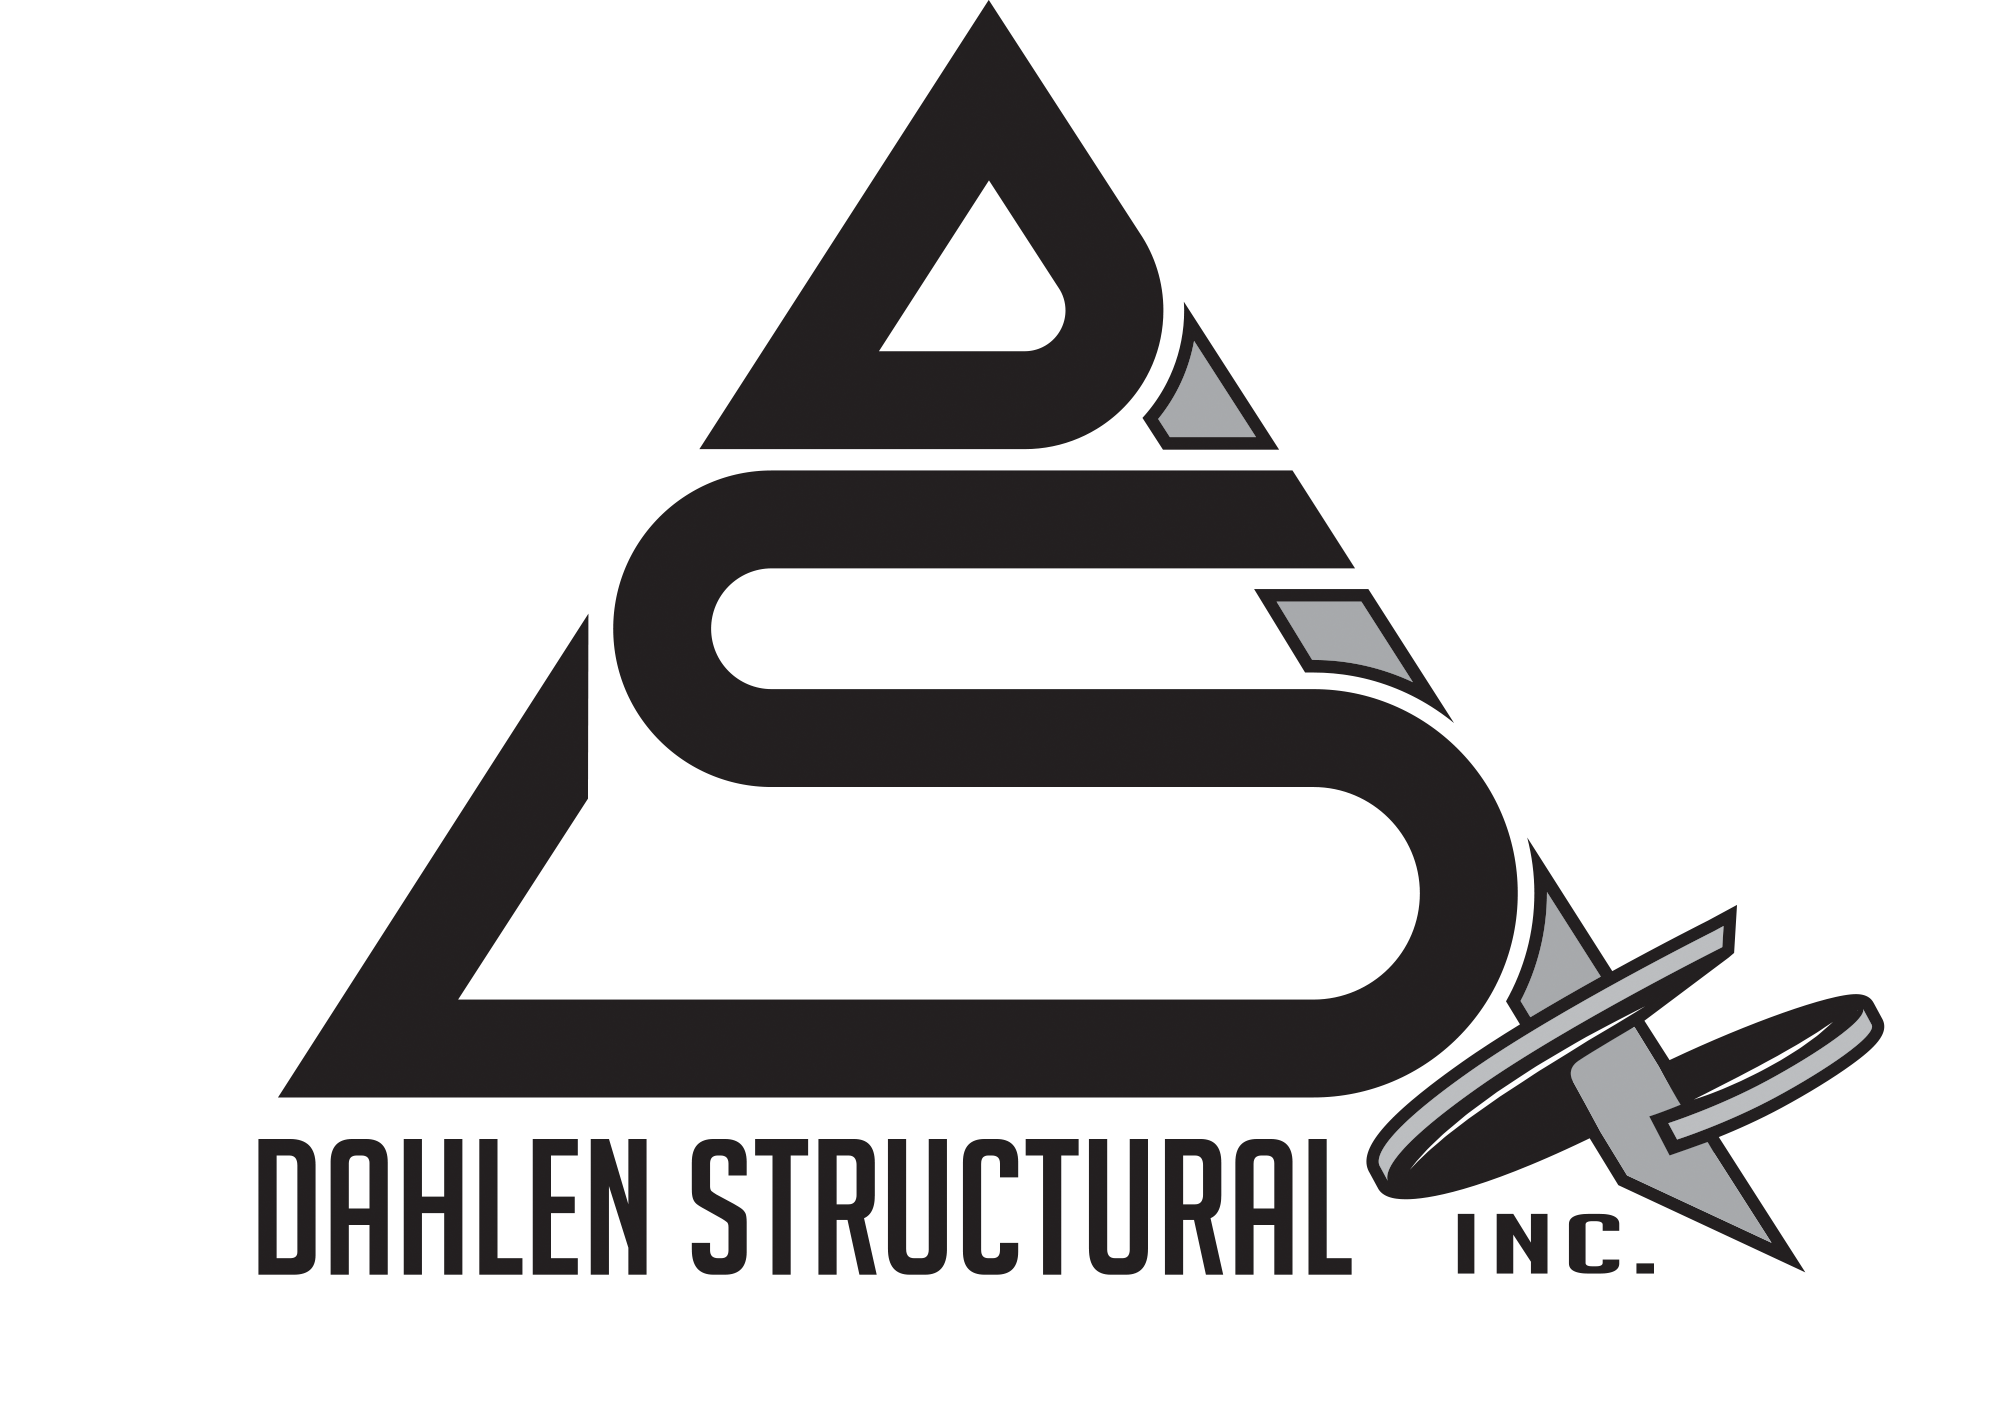 Dahlen Structural, Santa Cruz, CA Website